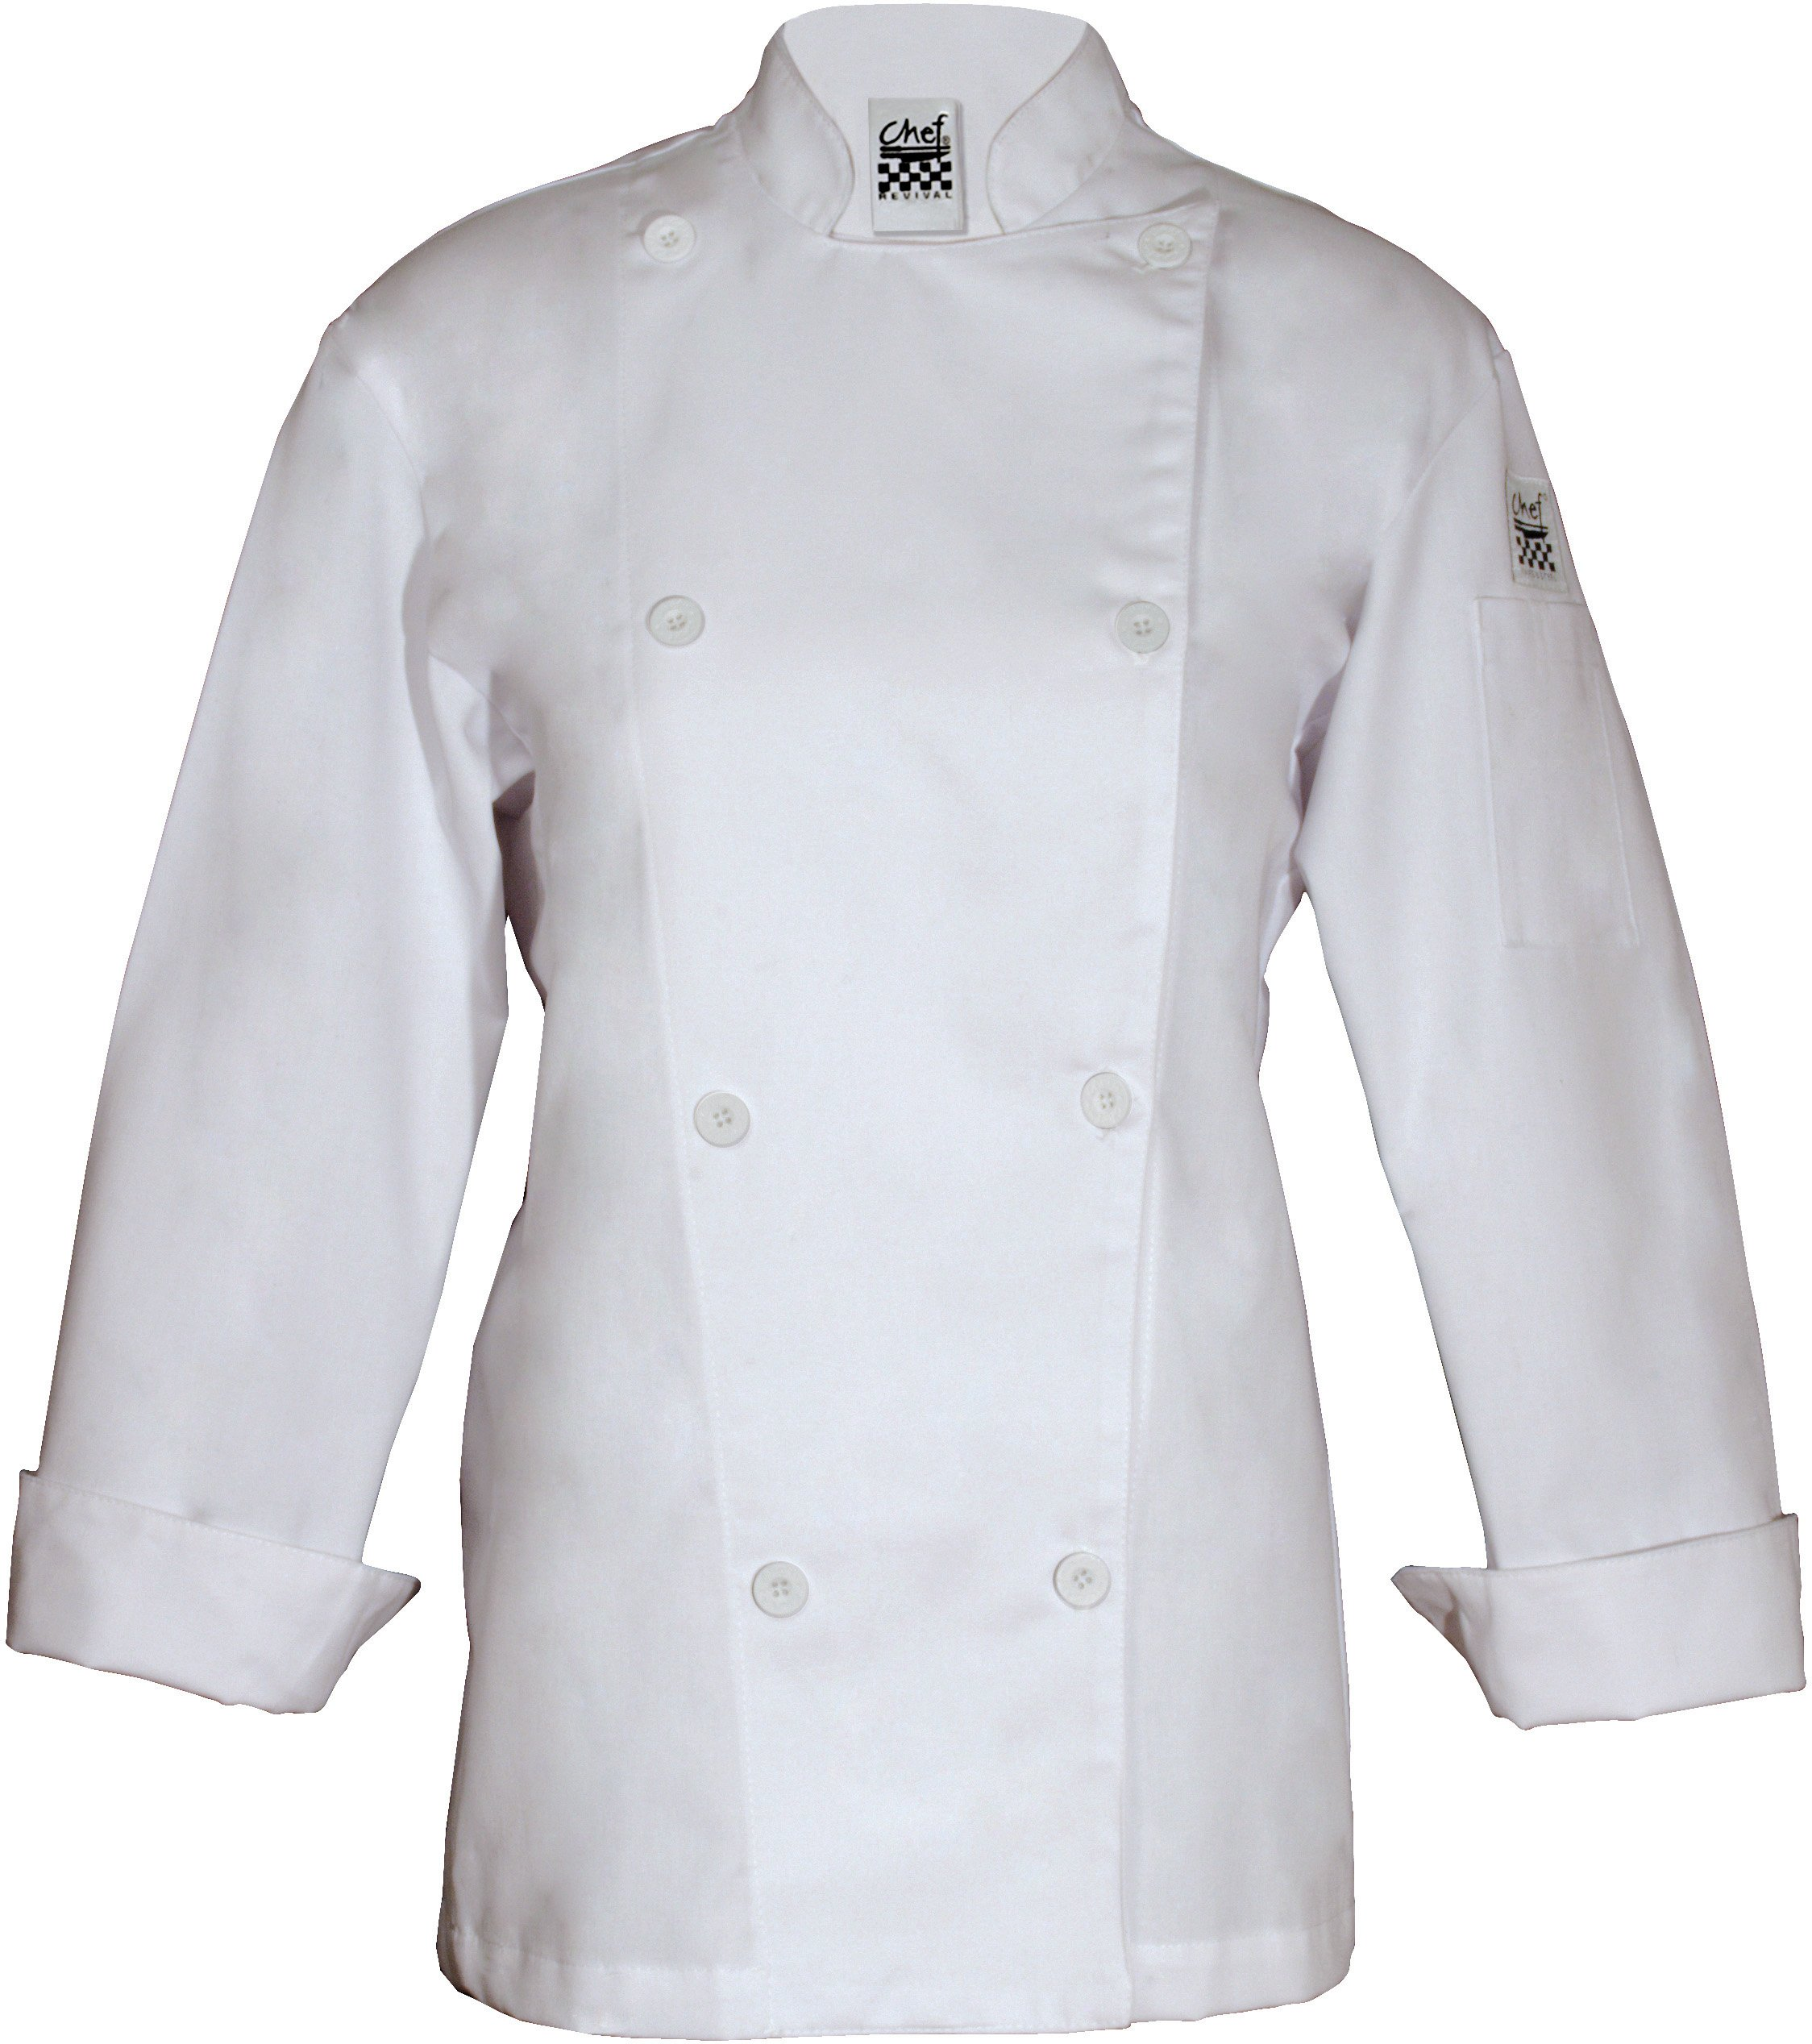 Chef Revival LJ027 Poly Cotton Ladies Knife and Steel Long Sleeve Jacket with White Chef Logo Button, 5X-Large, White